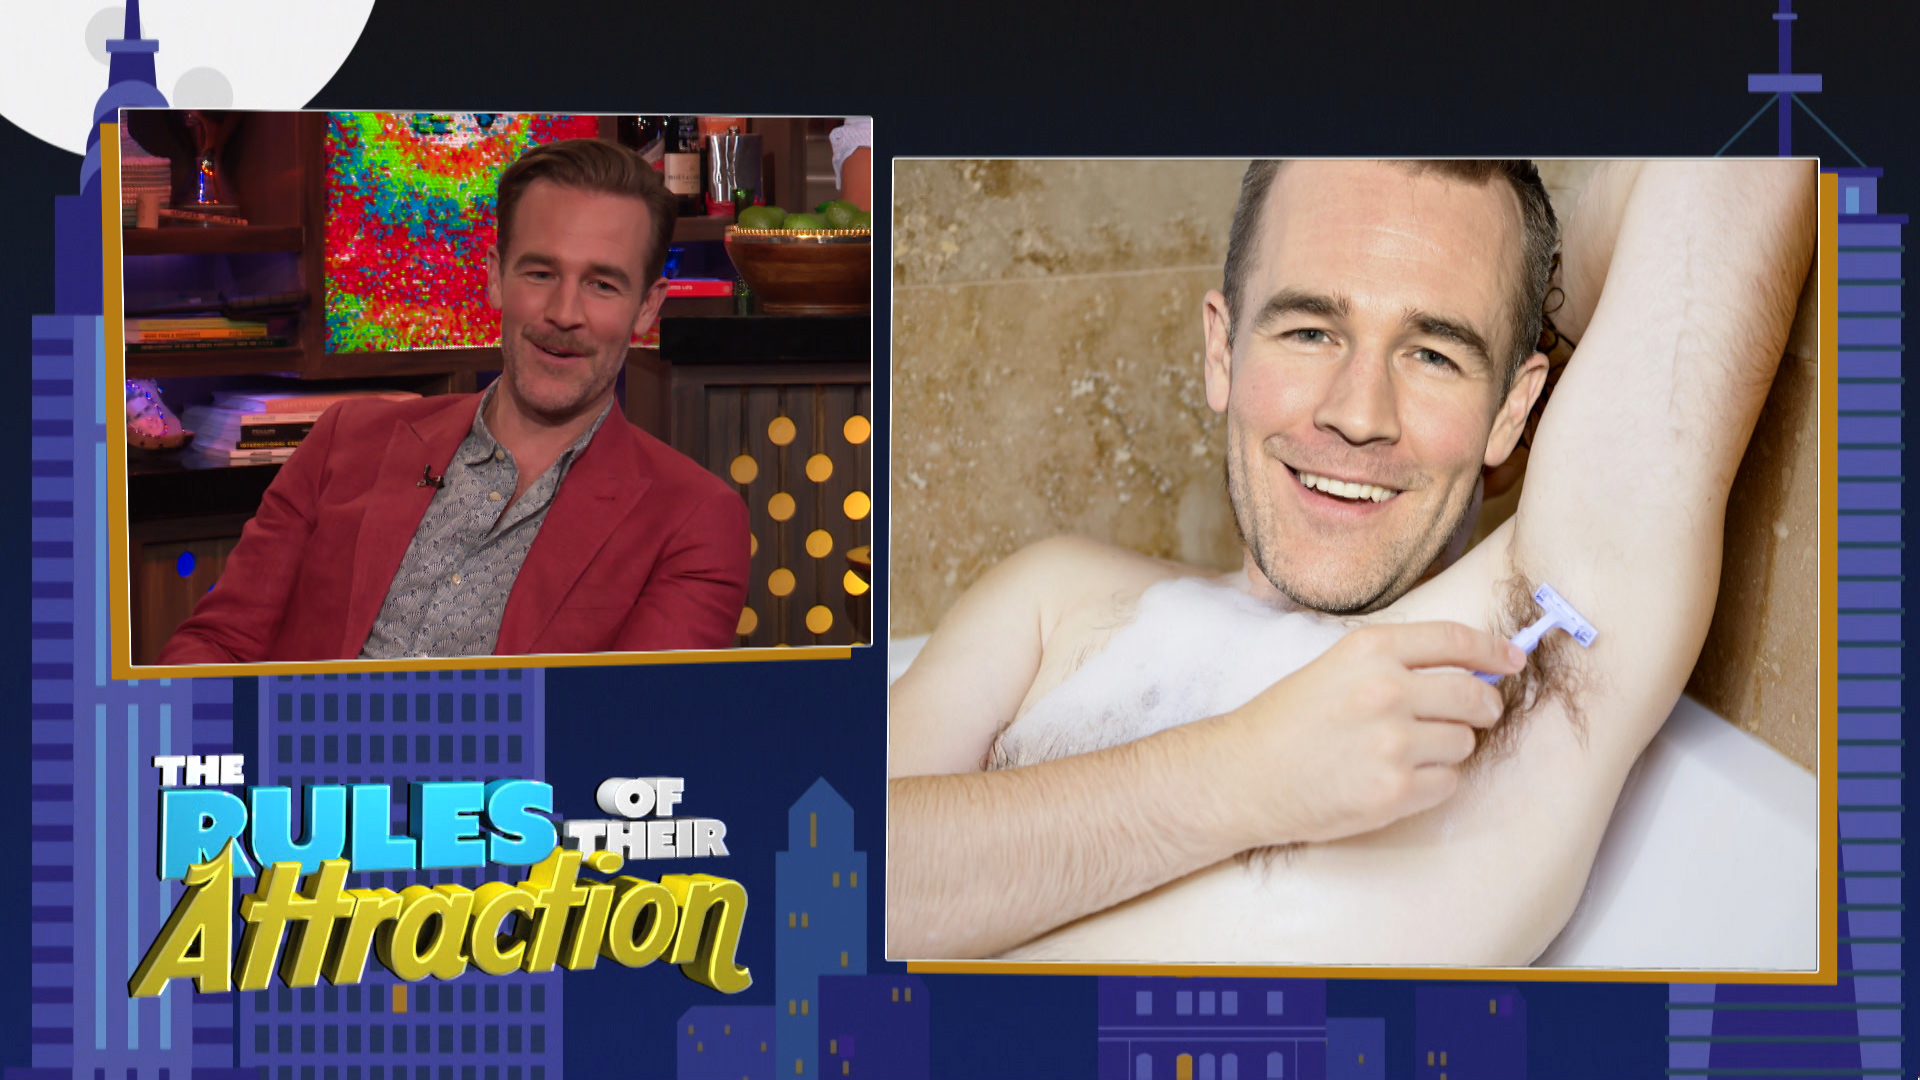 Kate Upton & James Van Der Beek's Attractions